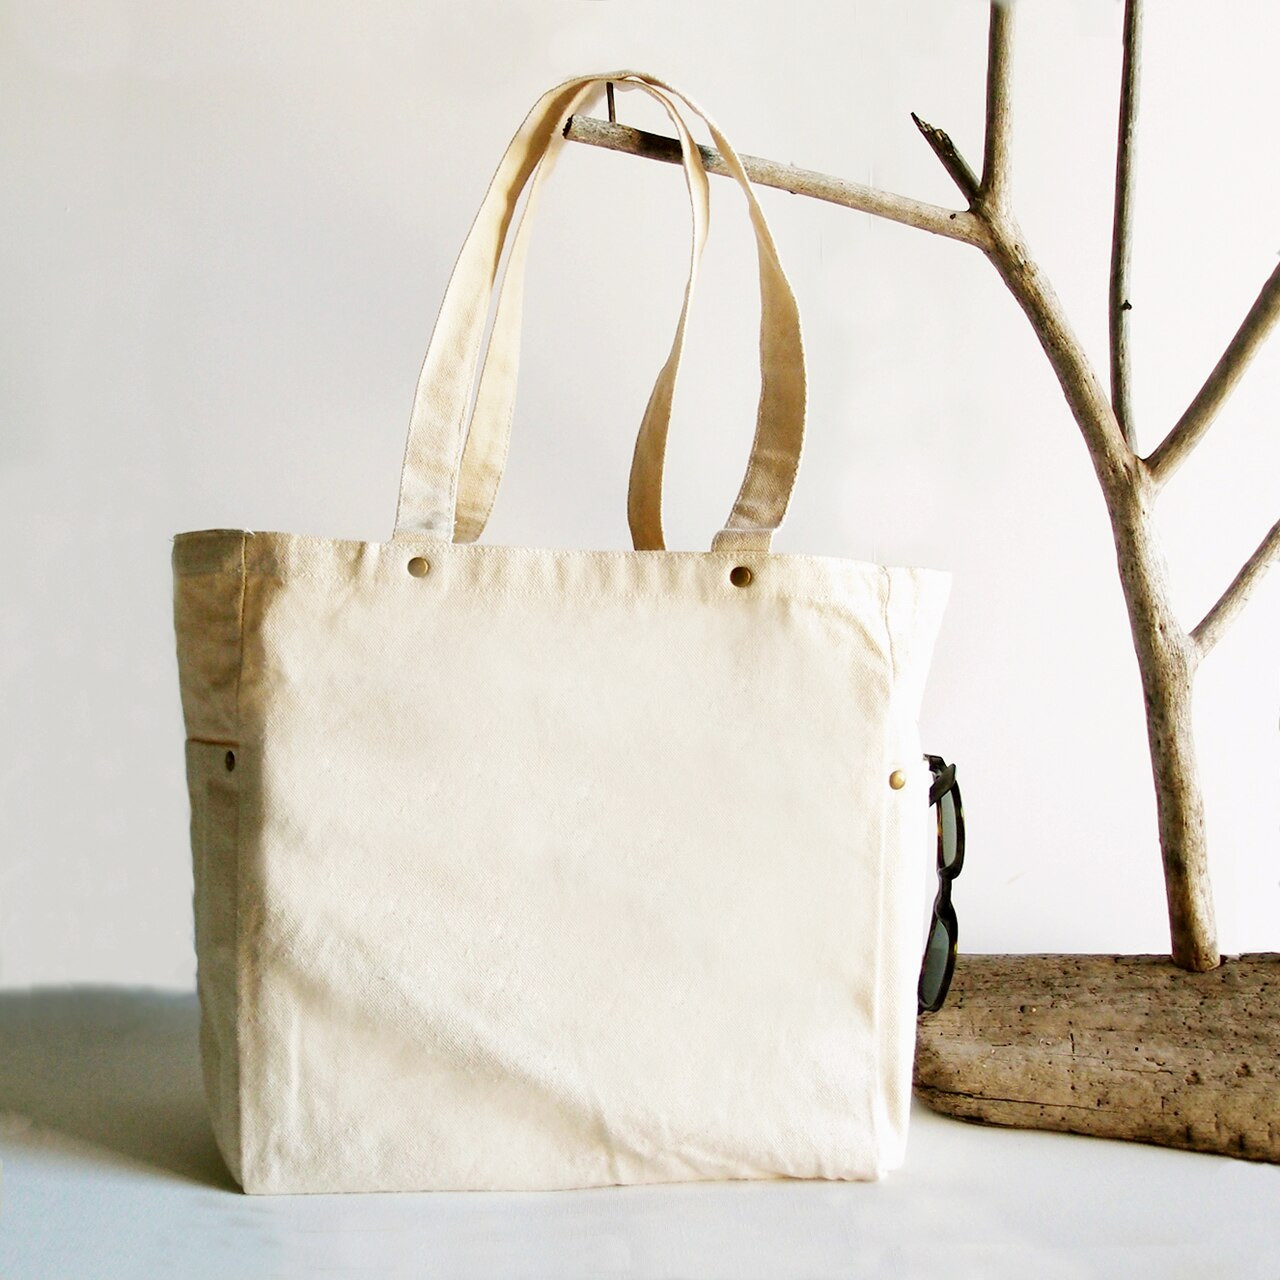 Wholesale Canvas Tote Bags, Washed Canvas Tote Bag with Side Pockets Natural B798-71   Packaging Decor